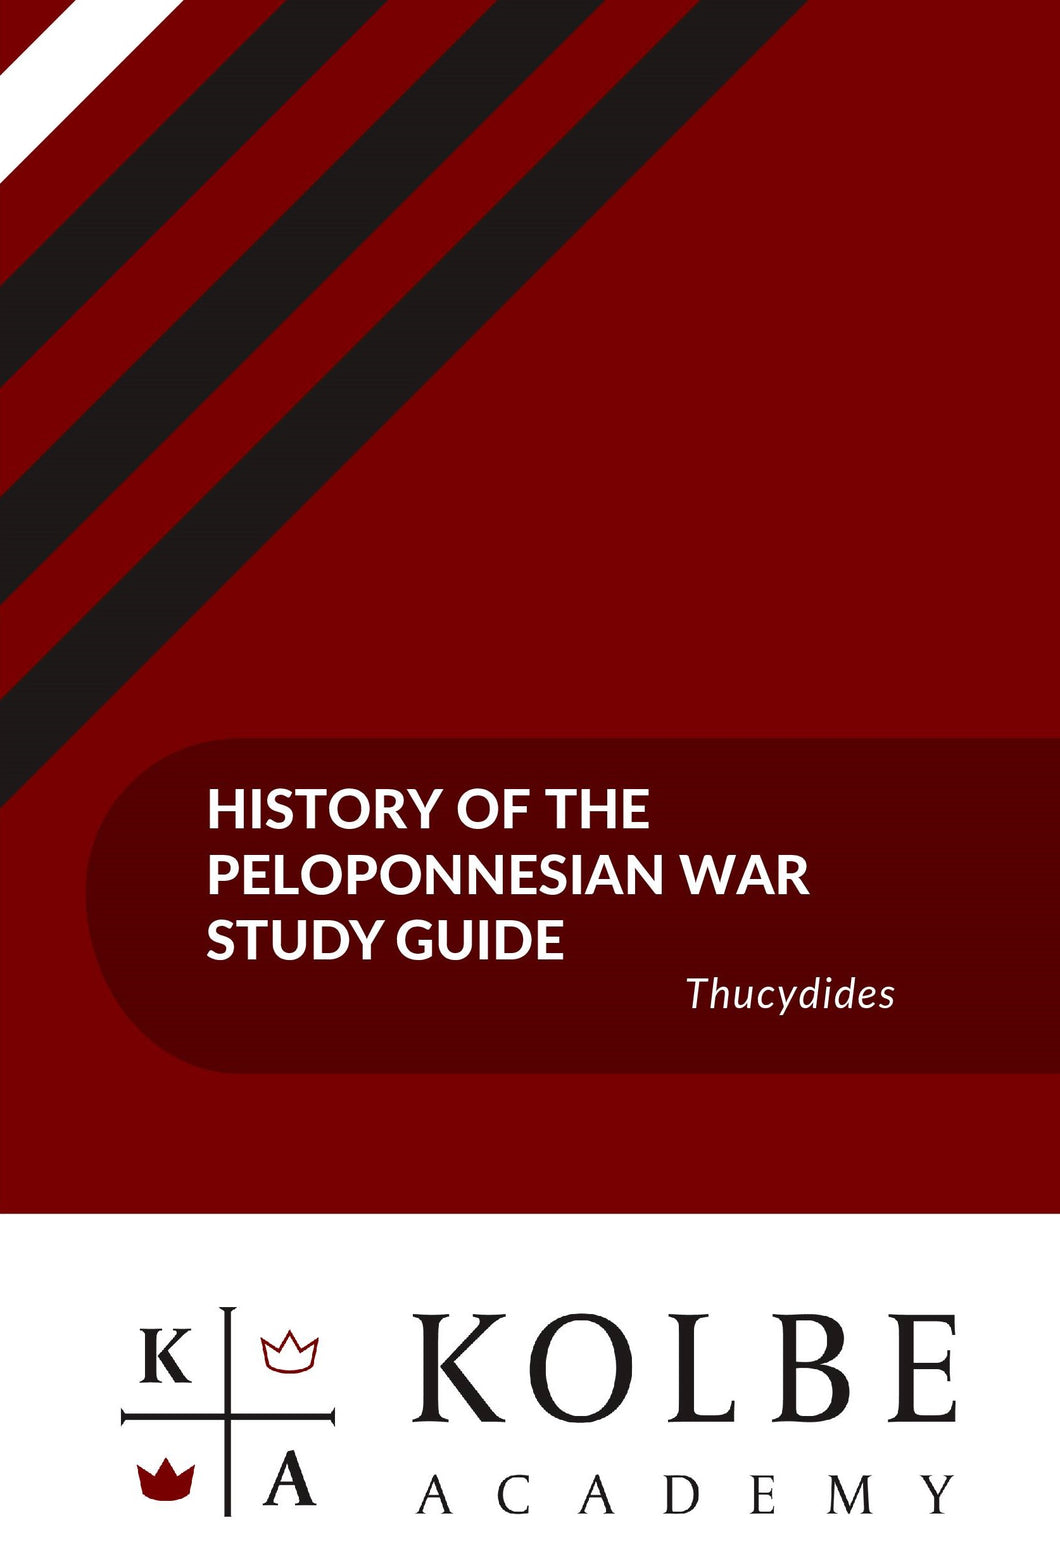 History of the Peloponnesian War Study Guides